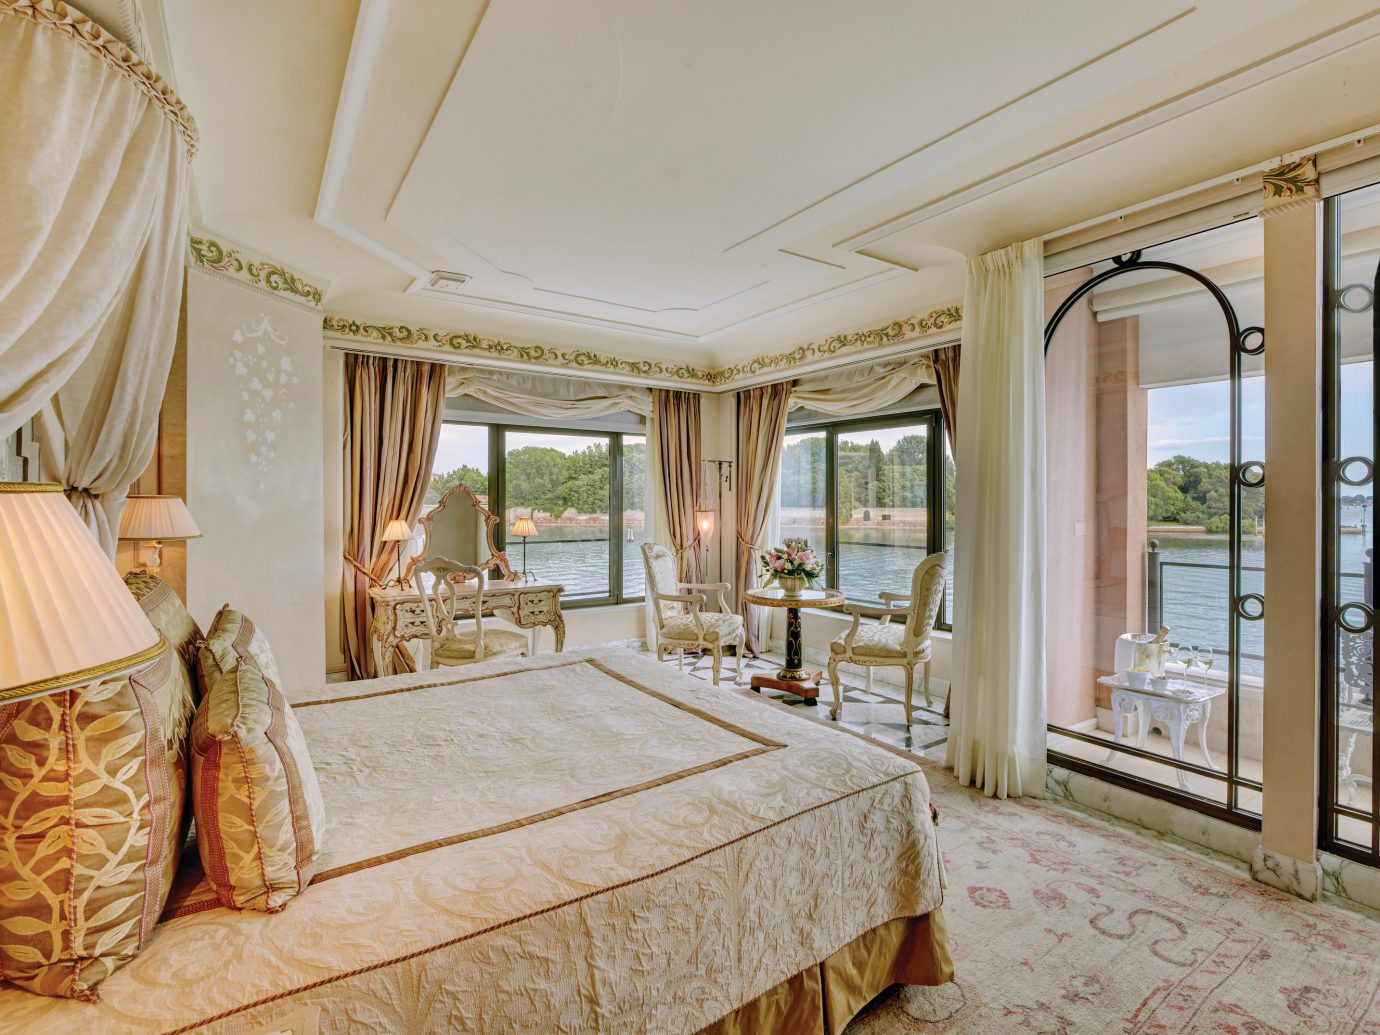 Celebs Hotels Italy Luxury Travel Trip Ideas Venice indoor bed room property Bedroom estate interior design real estate ceiling window Suite home living room floor window treatment penthouse apartment flooring furniture decorated